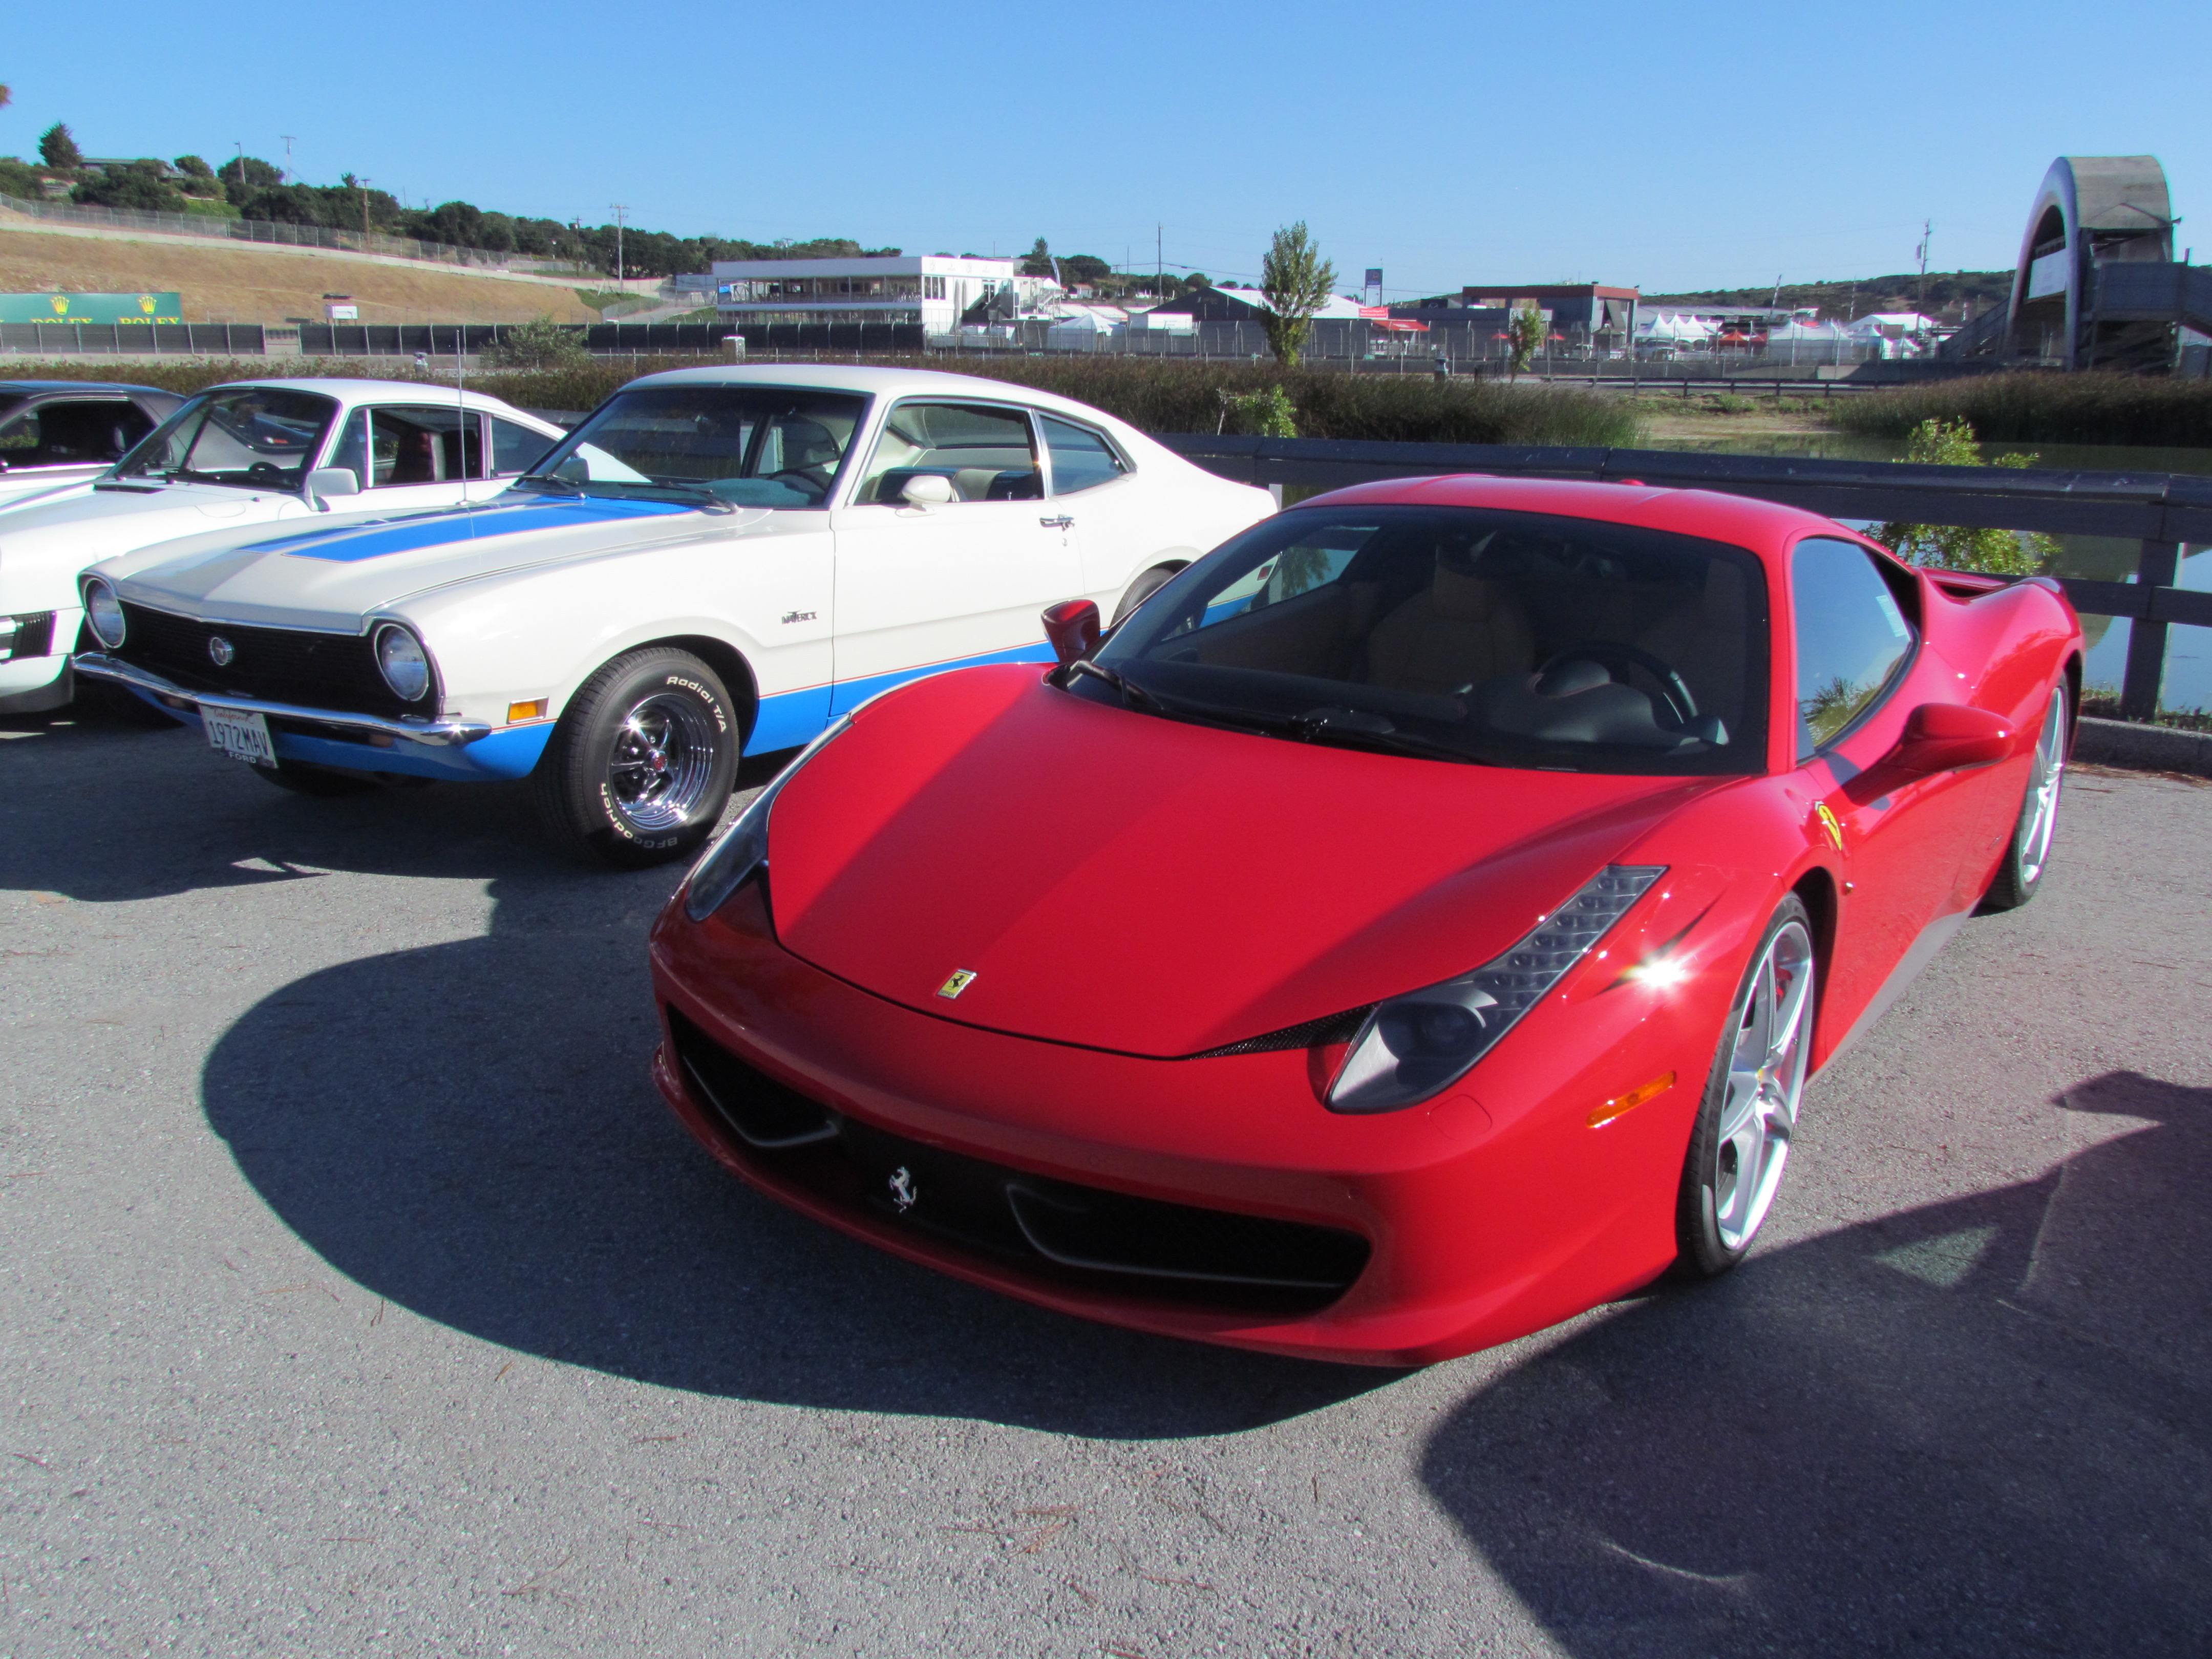 vintage racing, Laguna Seca presents coffee and cars on the eve of vintage racing weekend, ClassicCars.com Journal